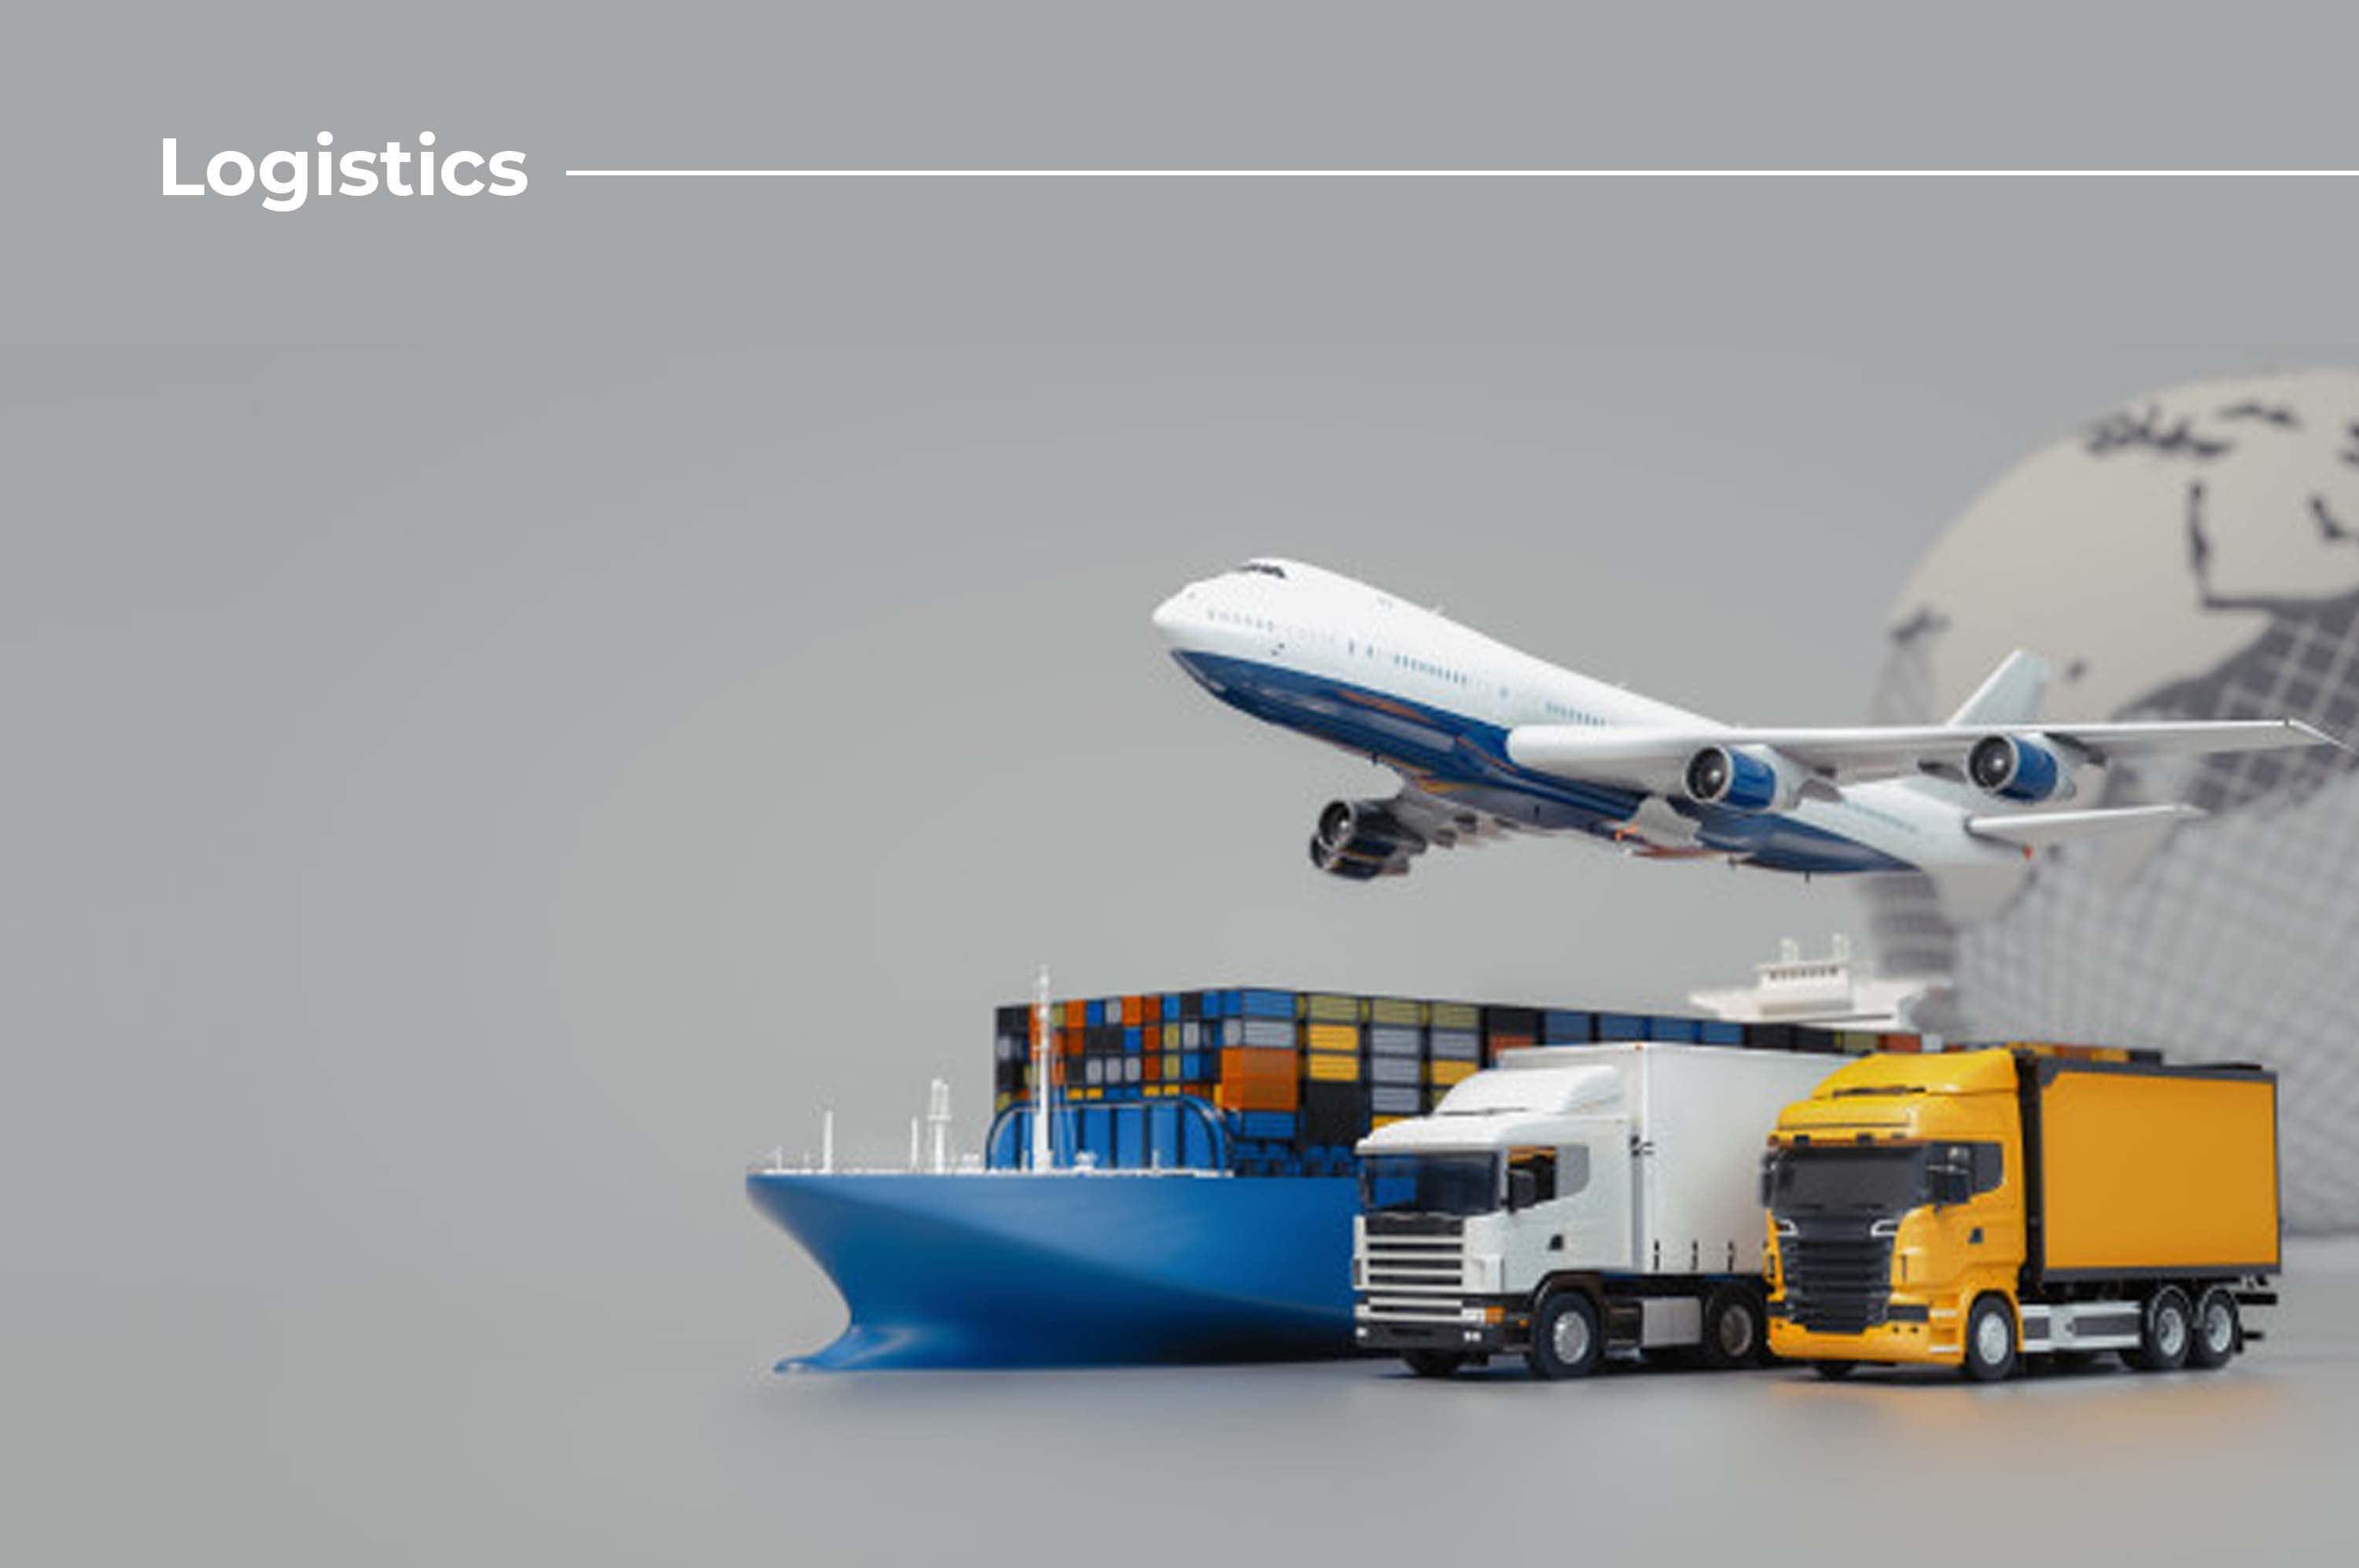 there is an aeroplane flying and also a blue ship flowing with containers and there are two trucks with containers